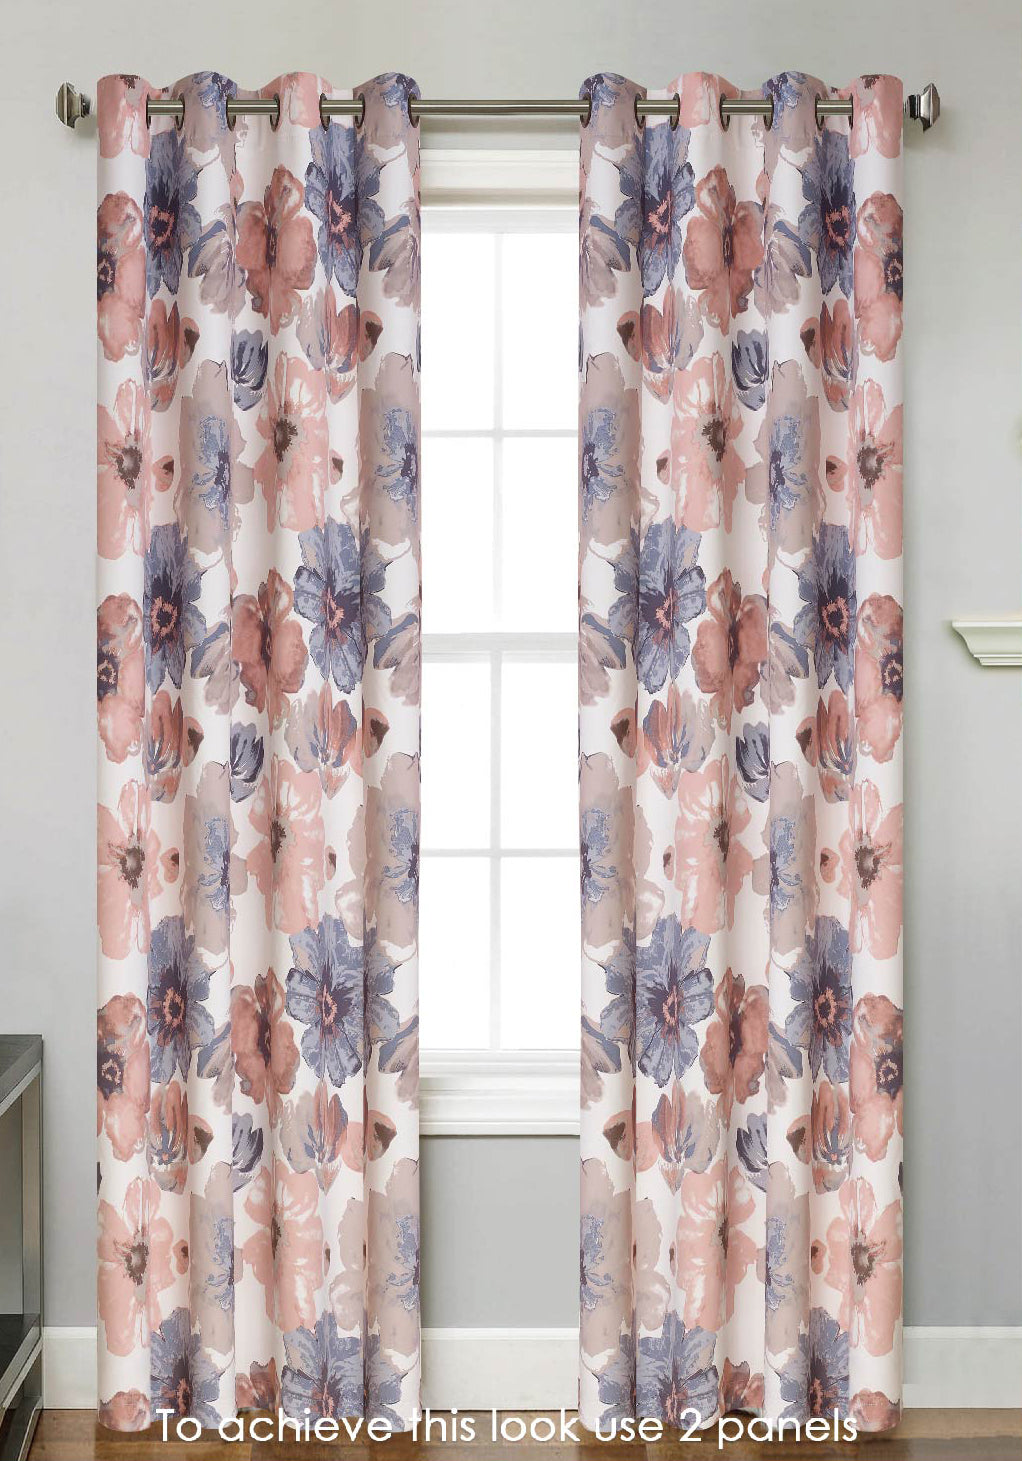 Sunshine Blackout Grommet Panel - 054x063   Blush C43799- Marburn Curtains